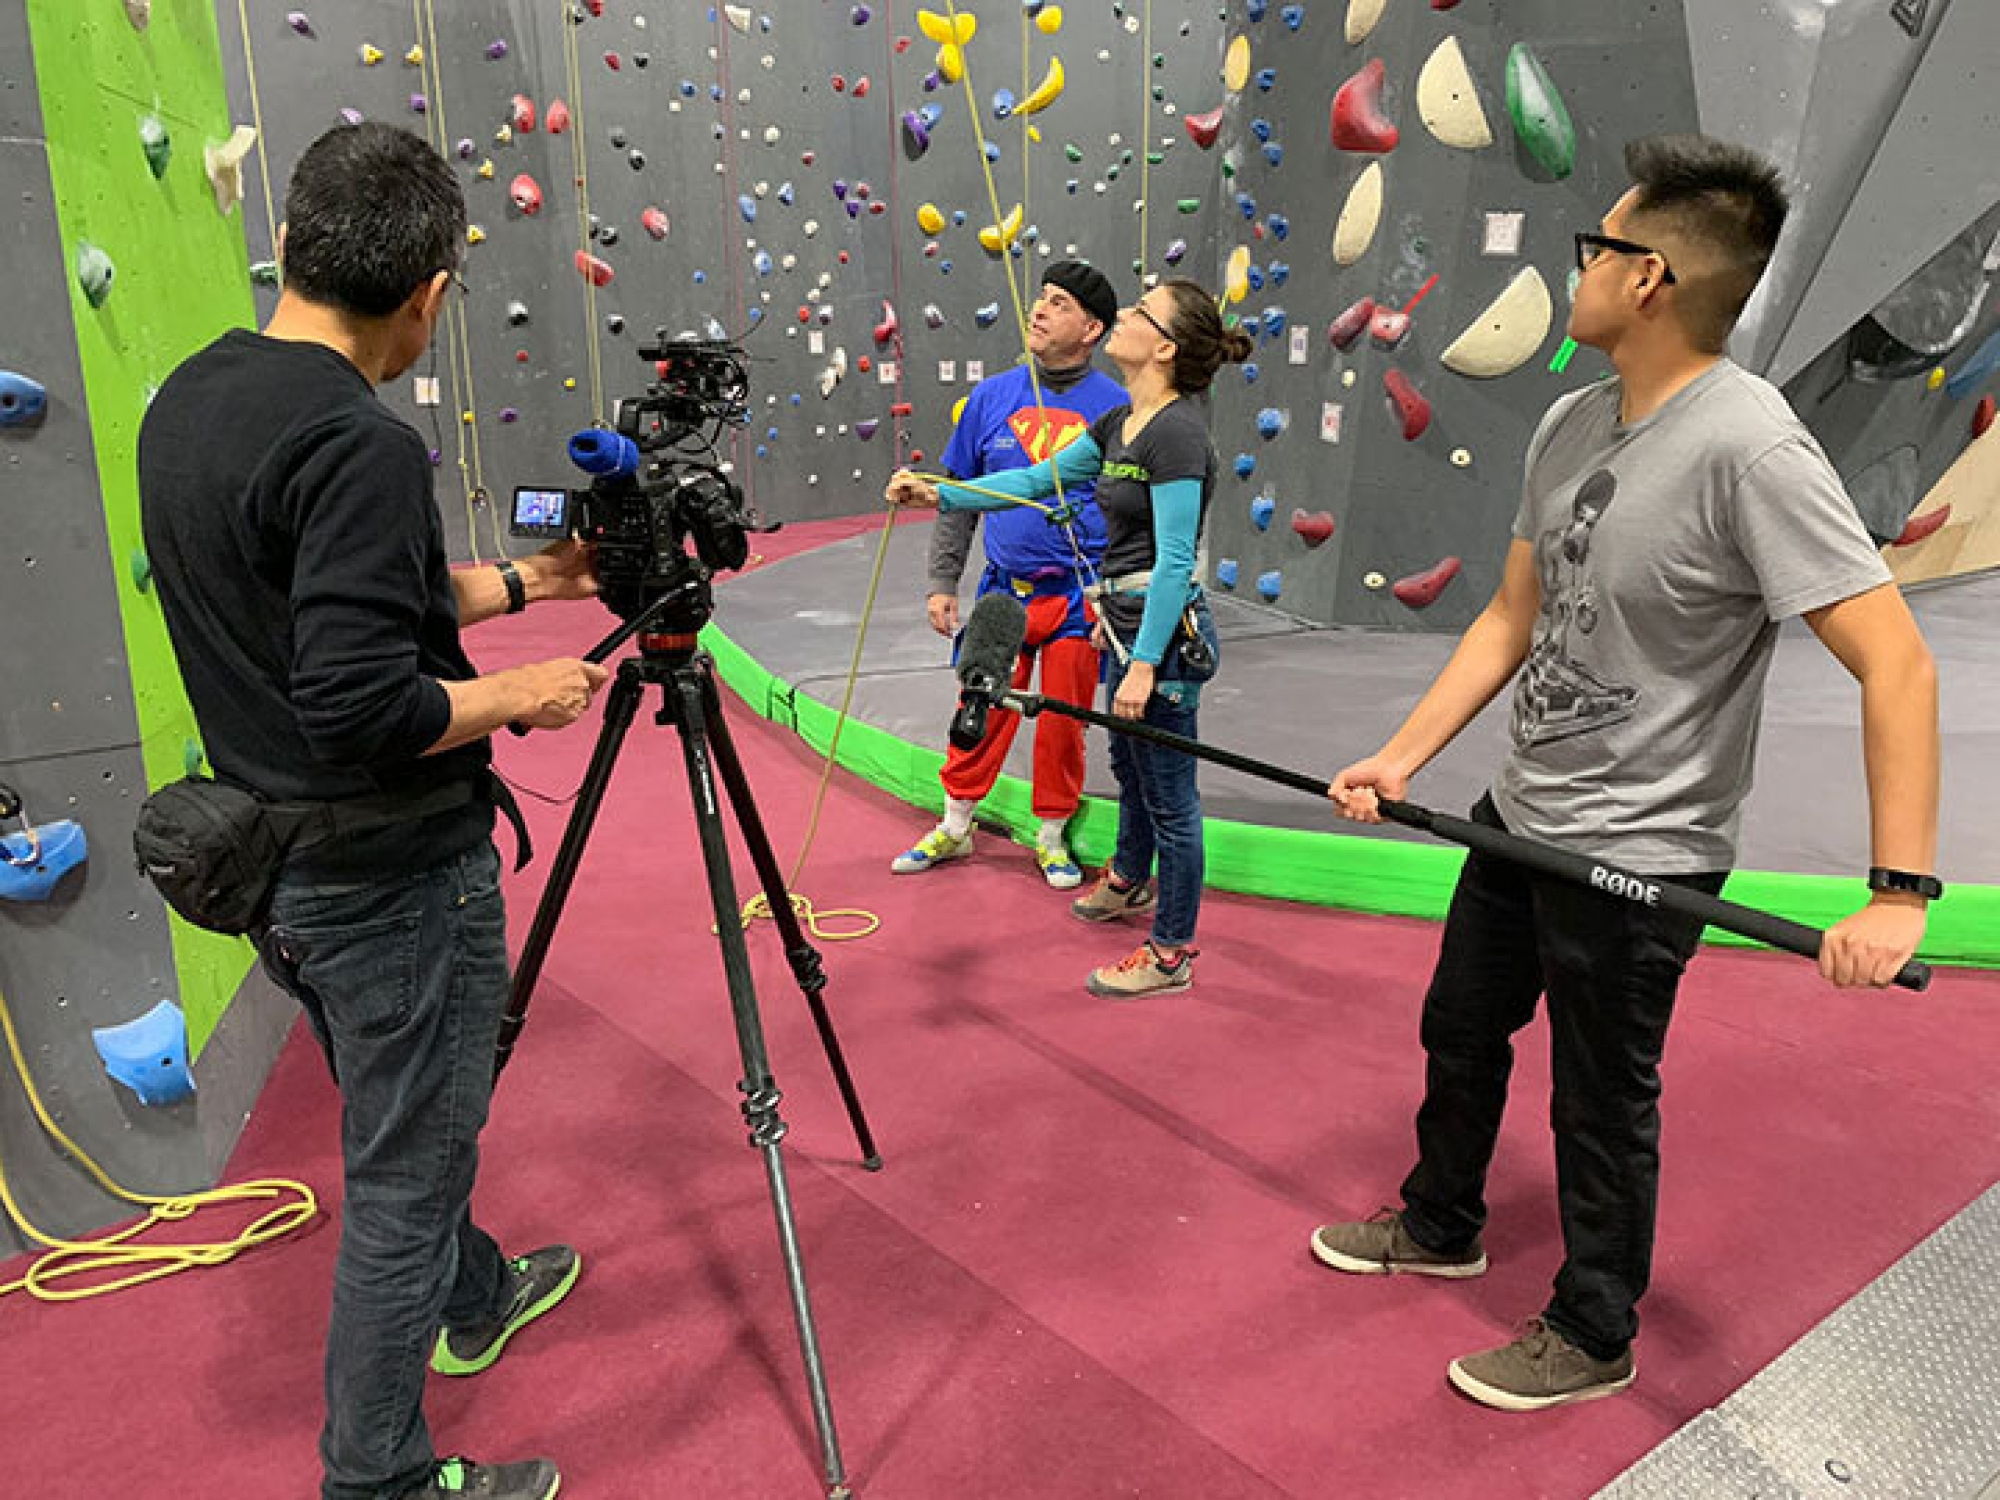 Filming a physics demonstration at a rock climbing gym